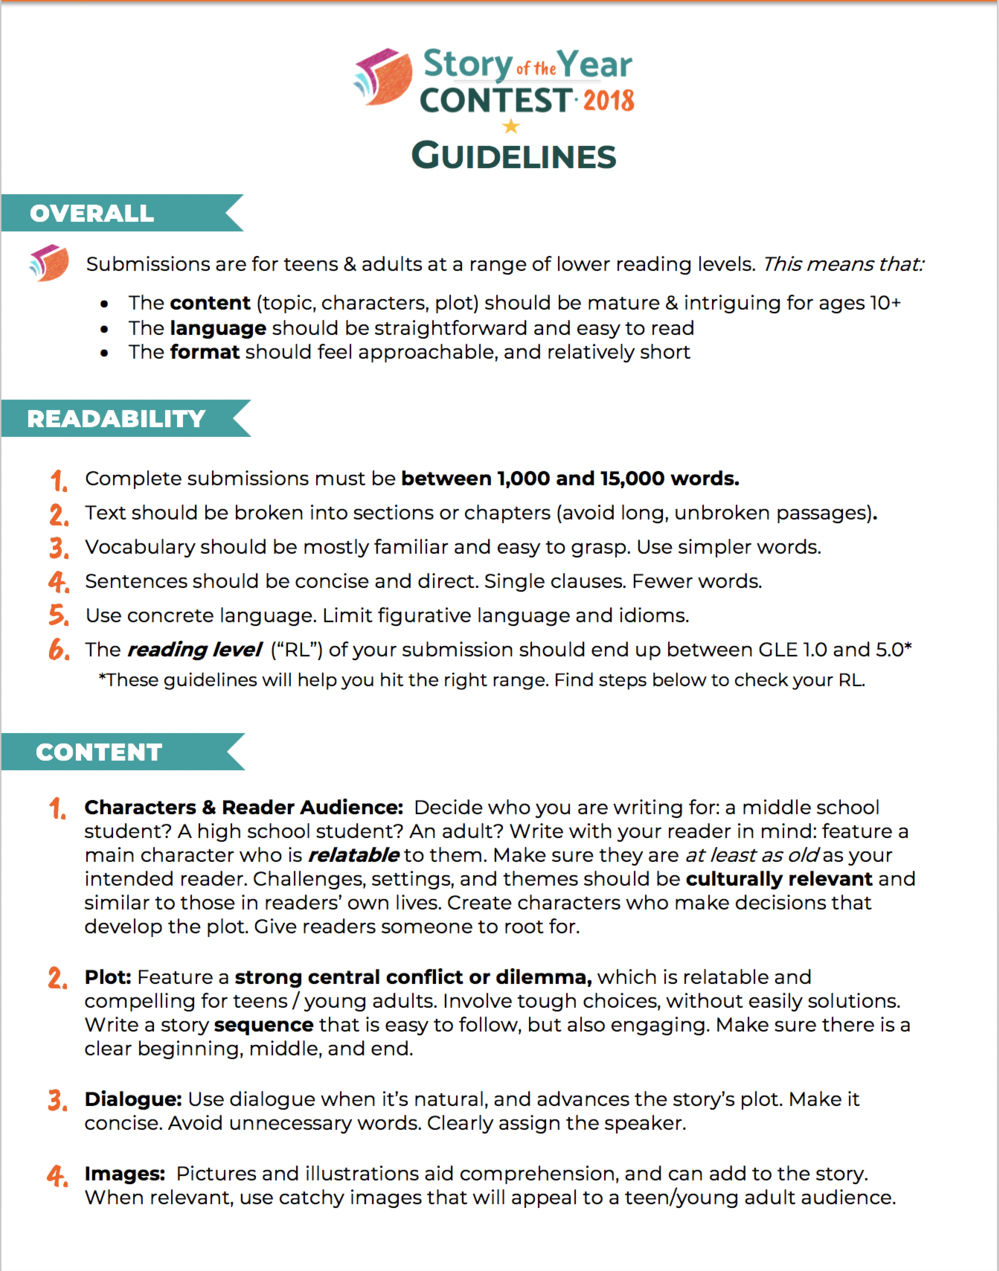 Guidelines Image 2018